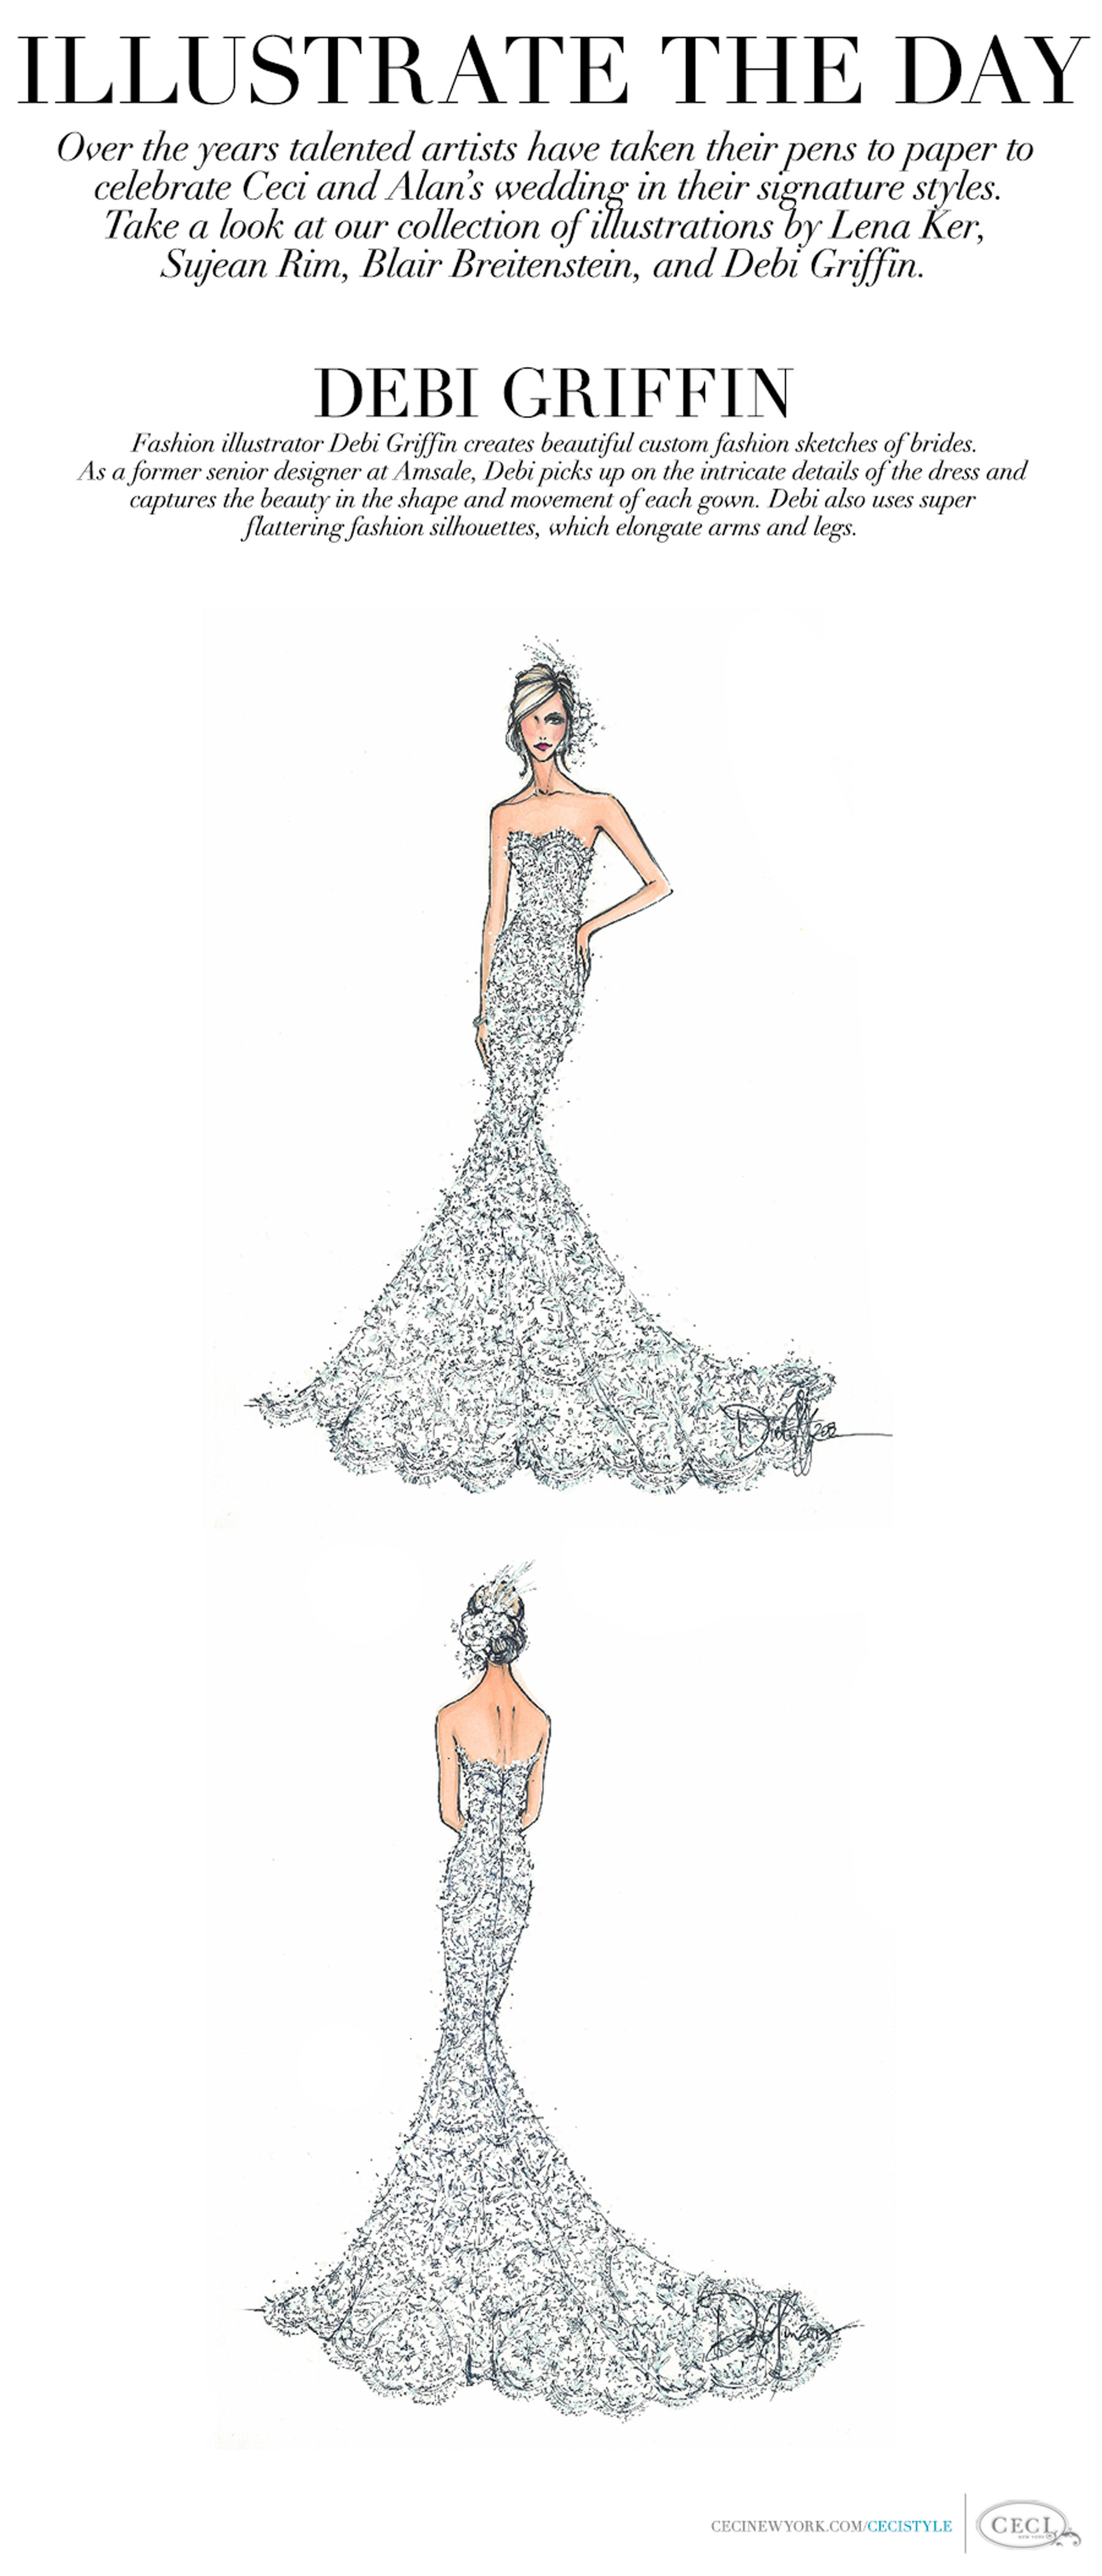 Fashion illustrator Debi Griffin creates beautiful custom fashion sketches of brides. As a former senior designer at Amsale, Debi picks up on the intricate details of the dress and captures the beauty in the shape and movement of each gown. Debi also uses super flattering fashion silhouettes, which elongate arms and legs.